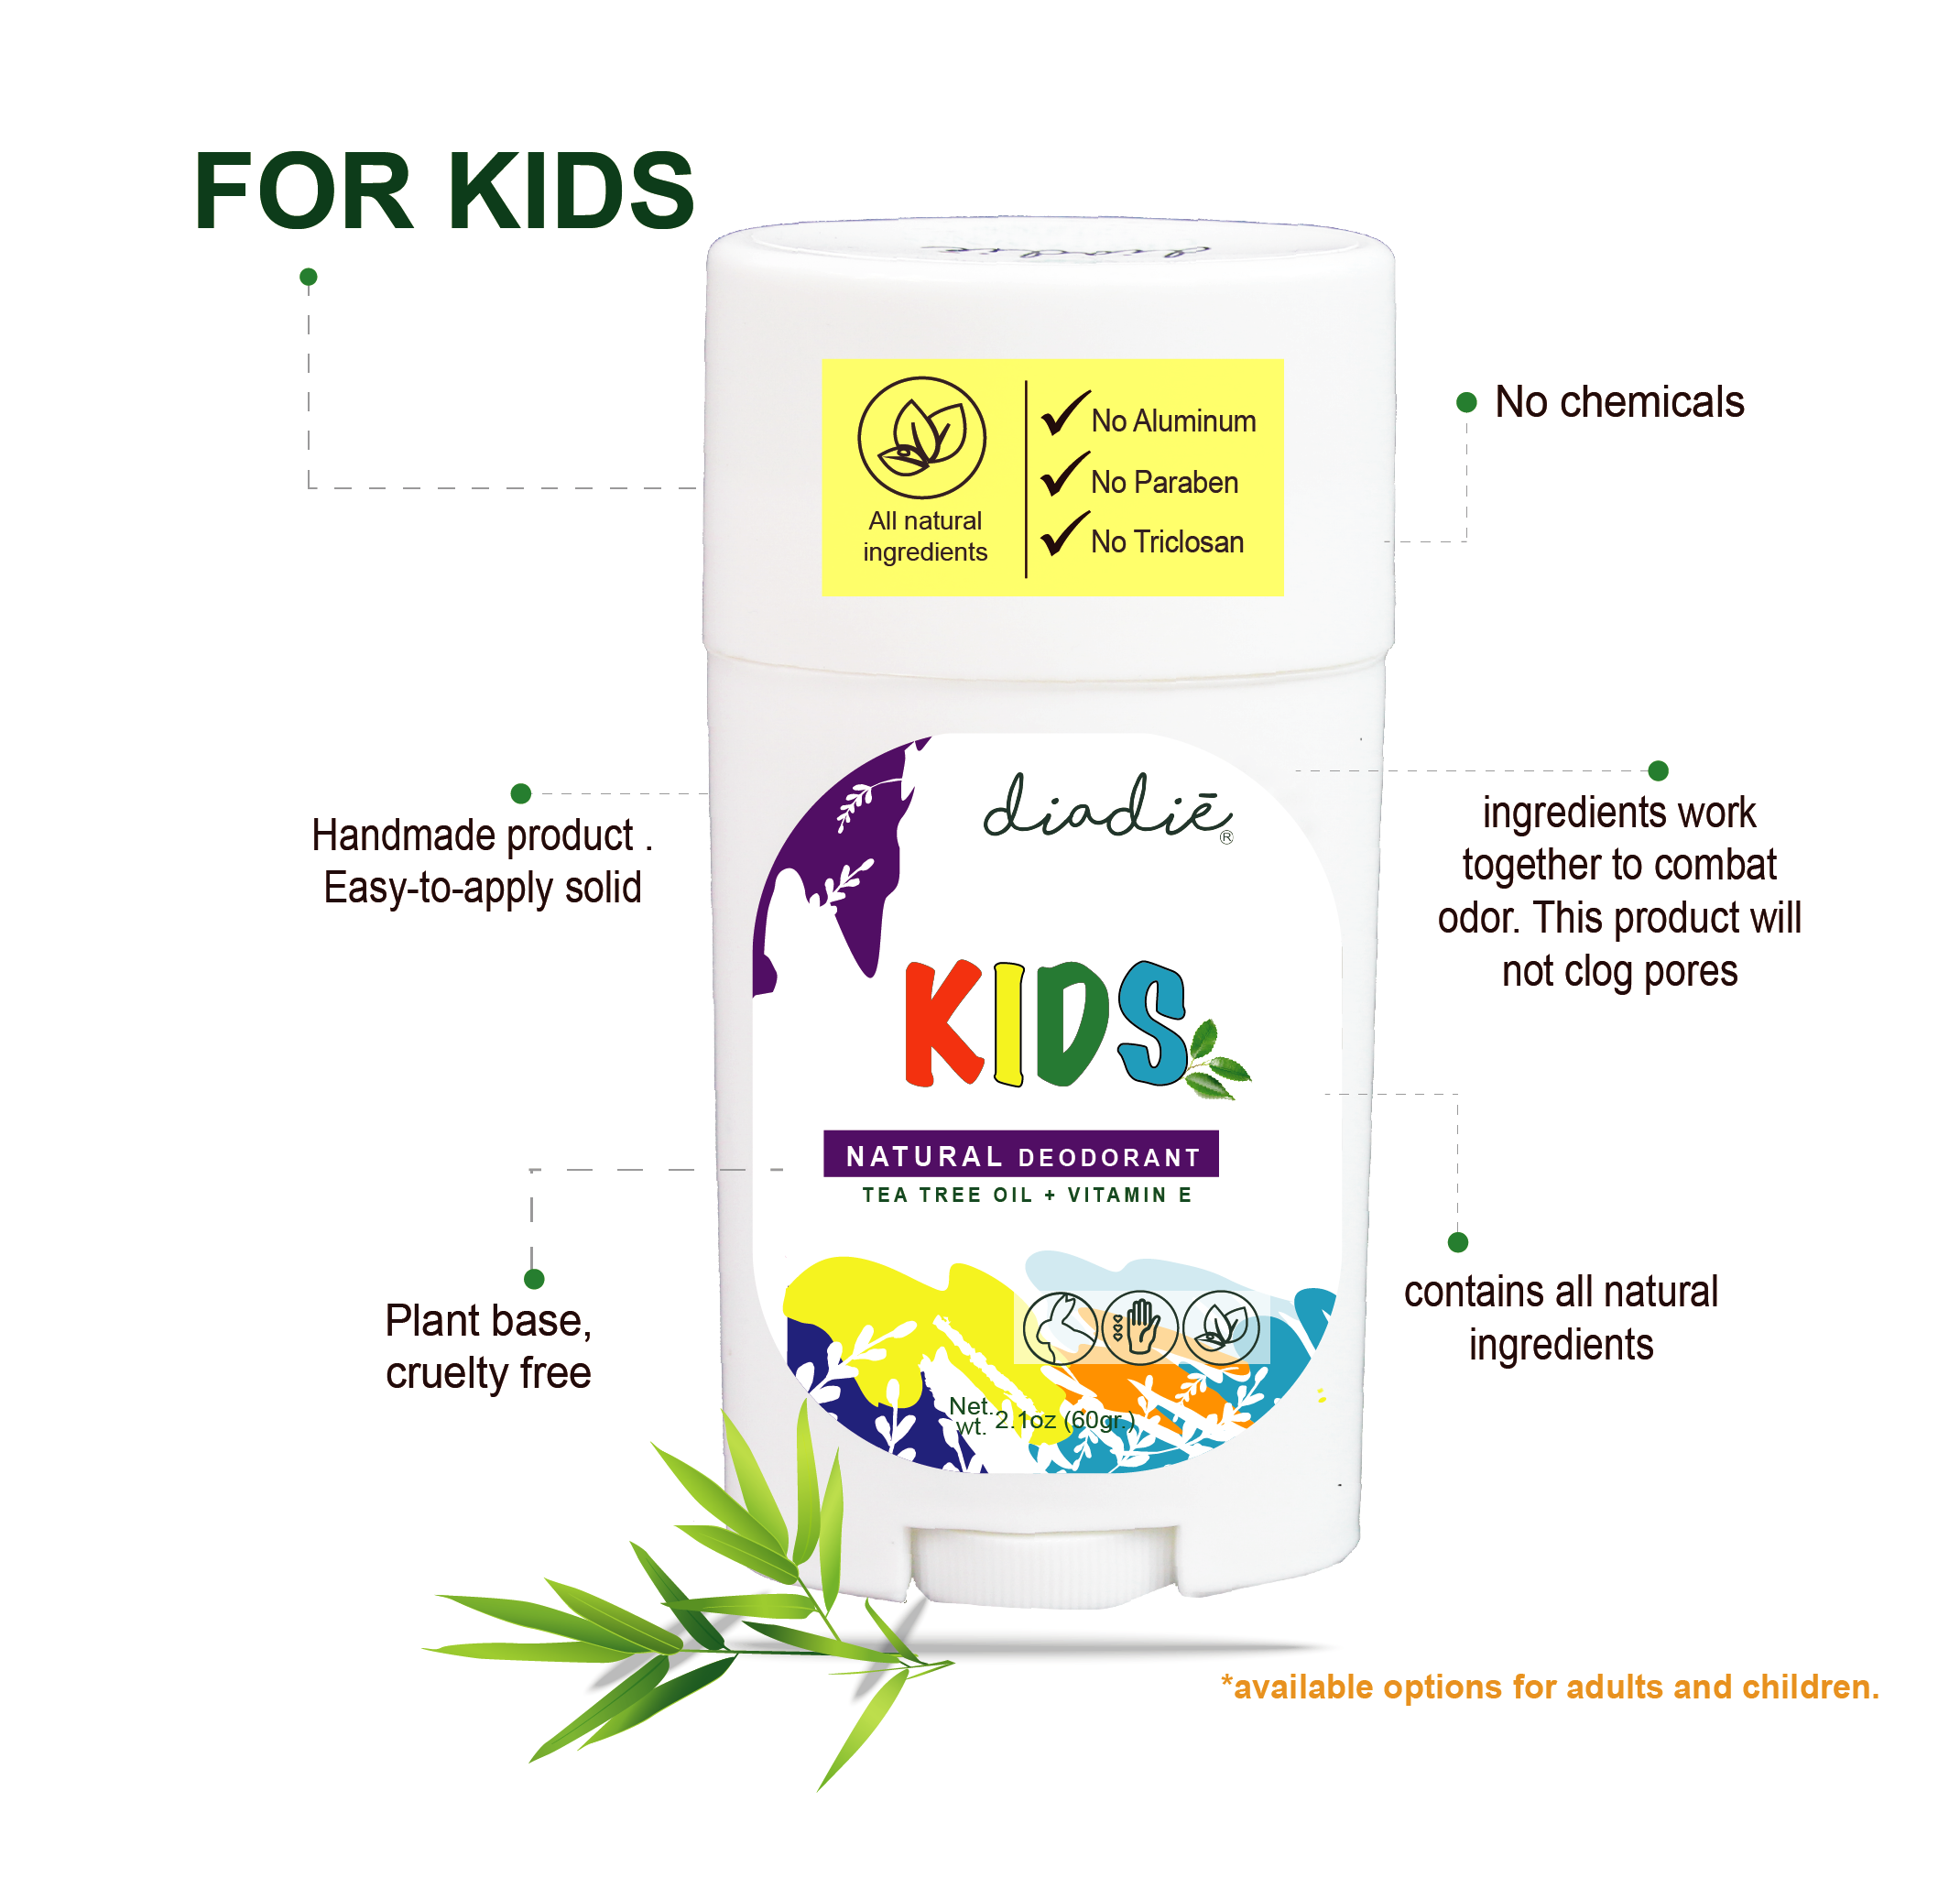 diadie natural deodorant kids